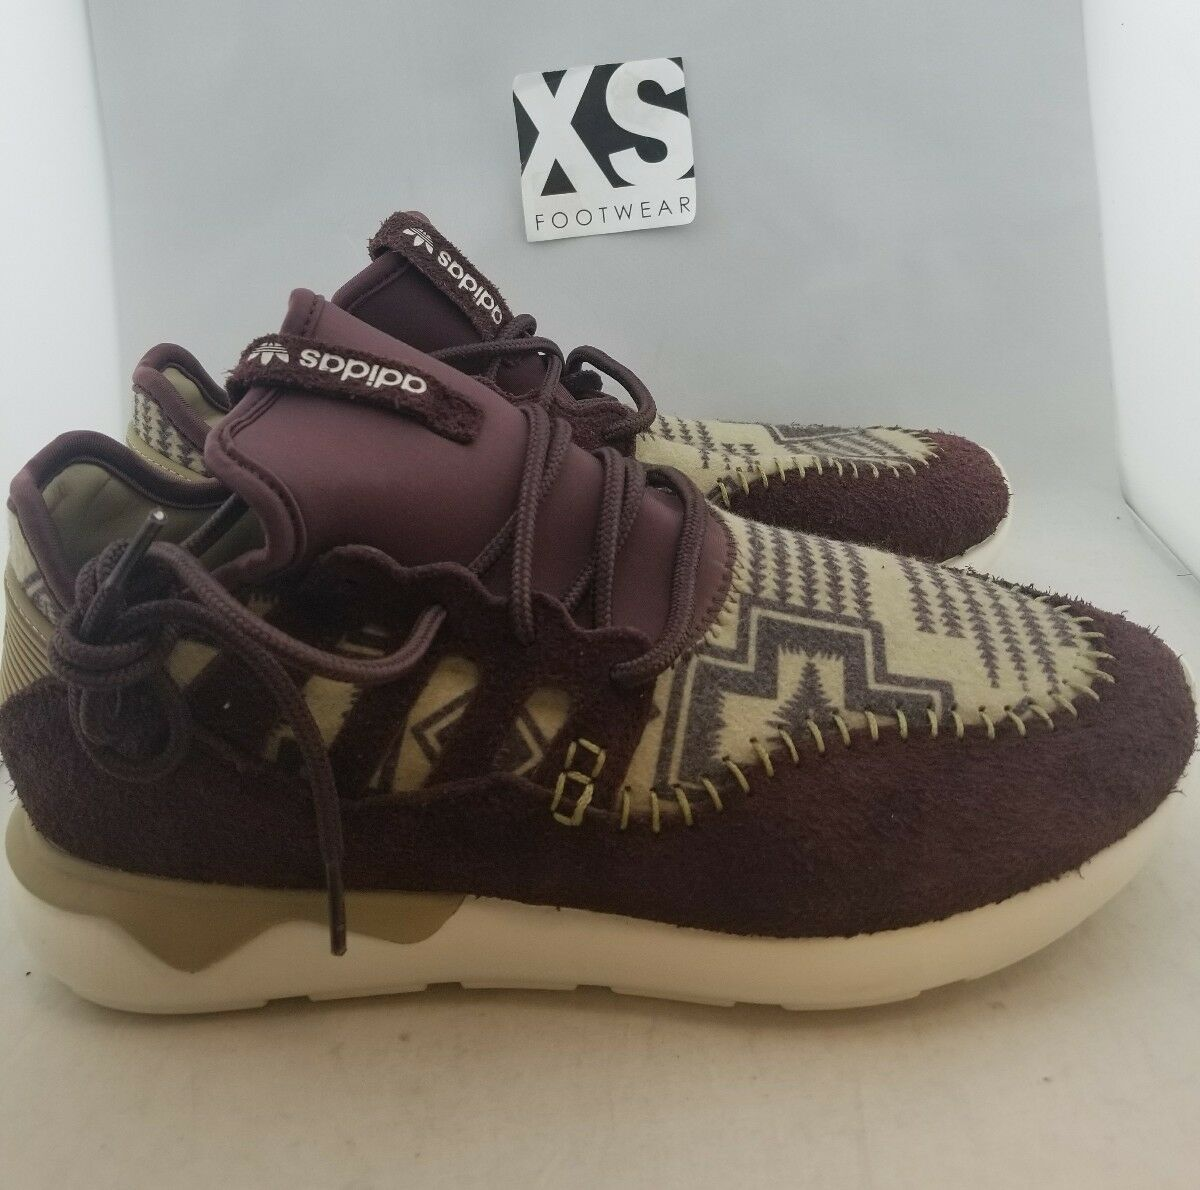 Adidas Tubular Maroon Athletic Sneakers Men's US 9.5 (A,0)